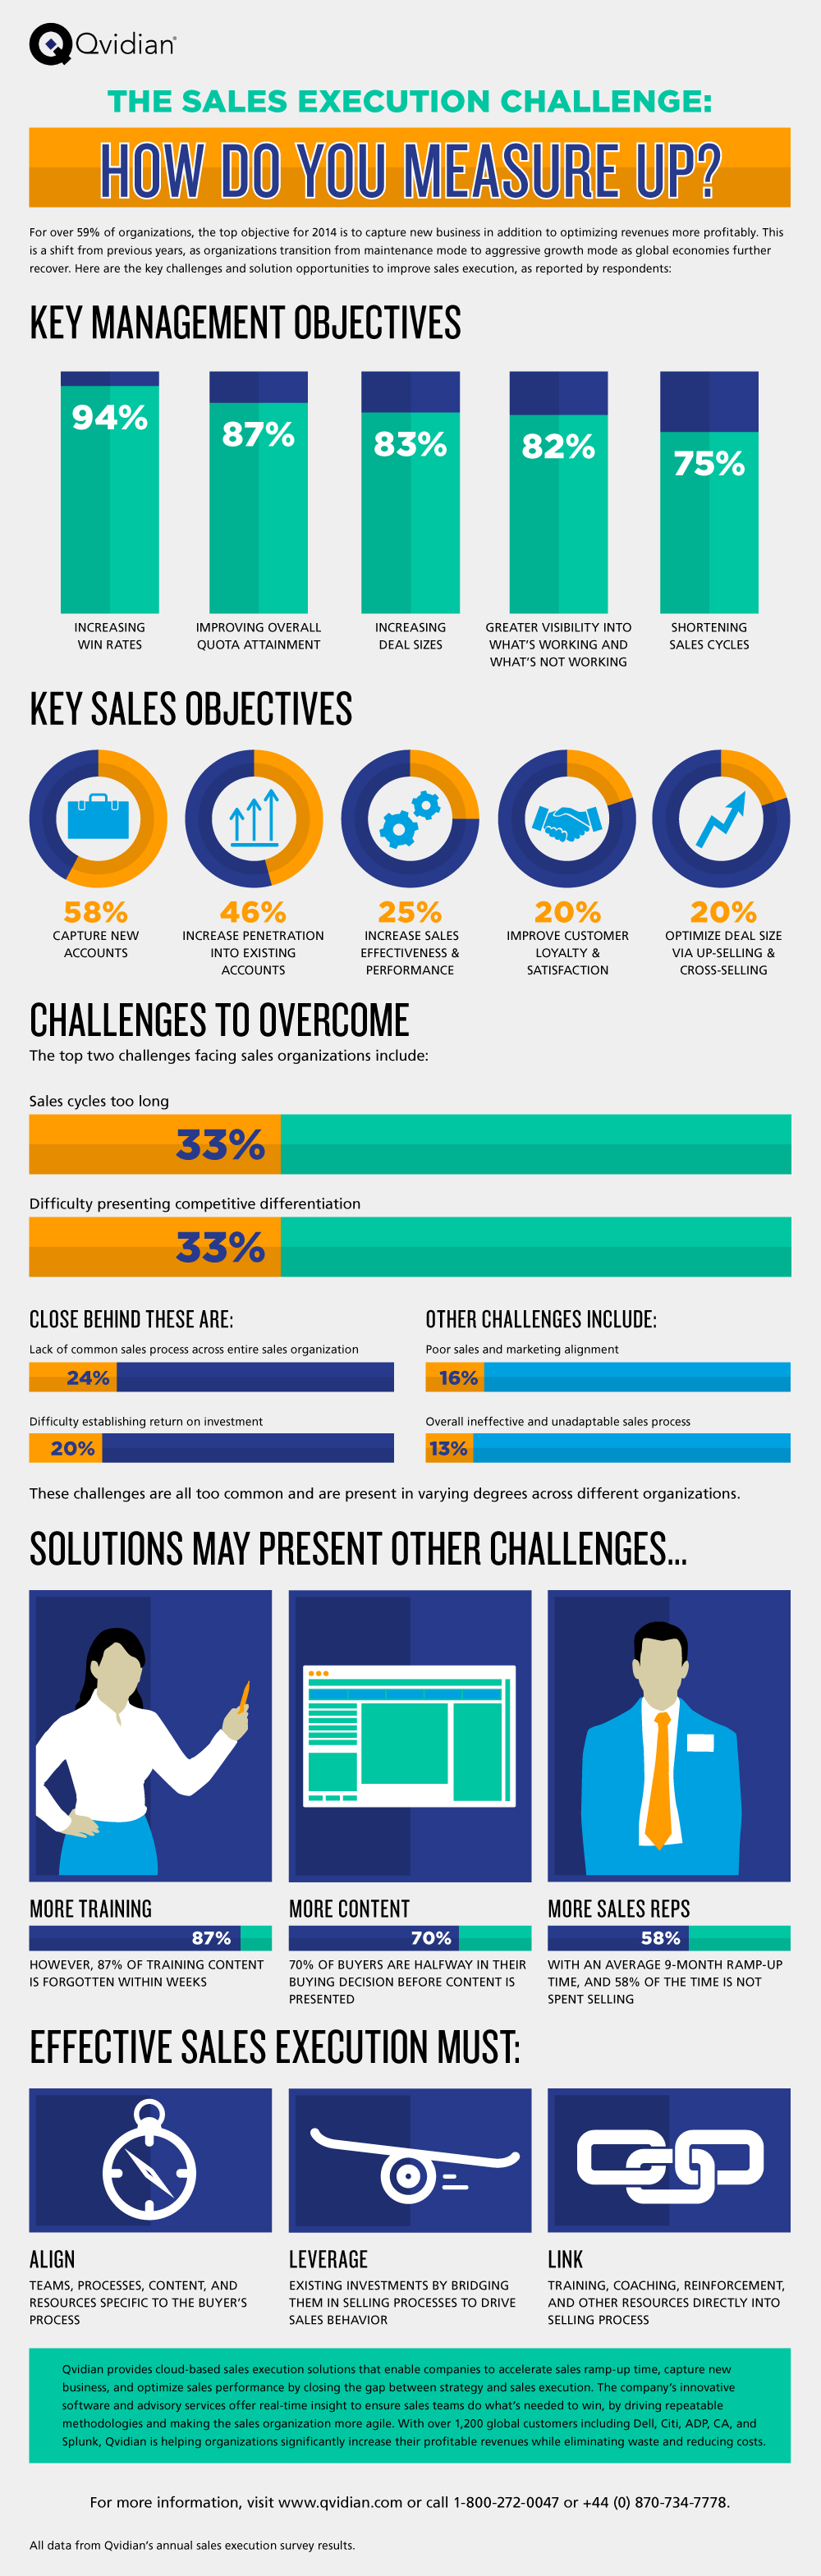 The Sales Execution Challenge - How Do You Measure Up?